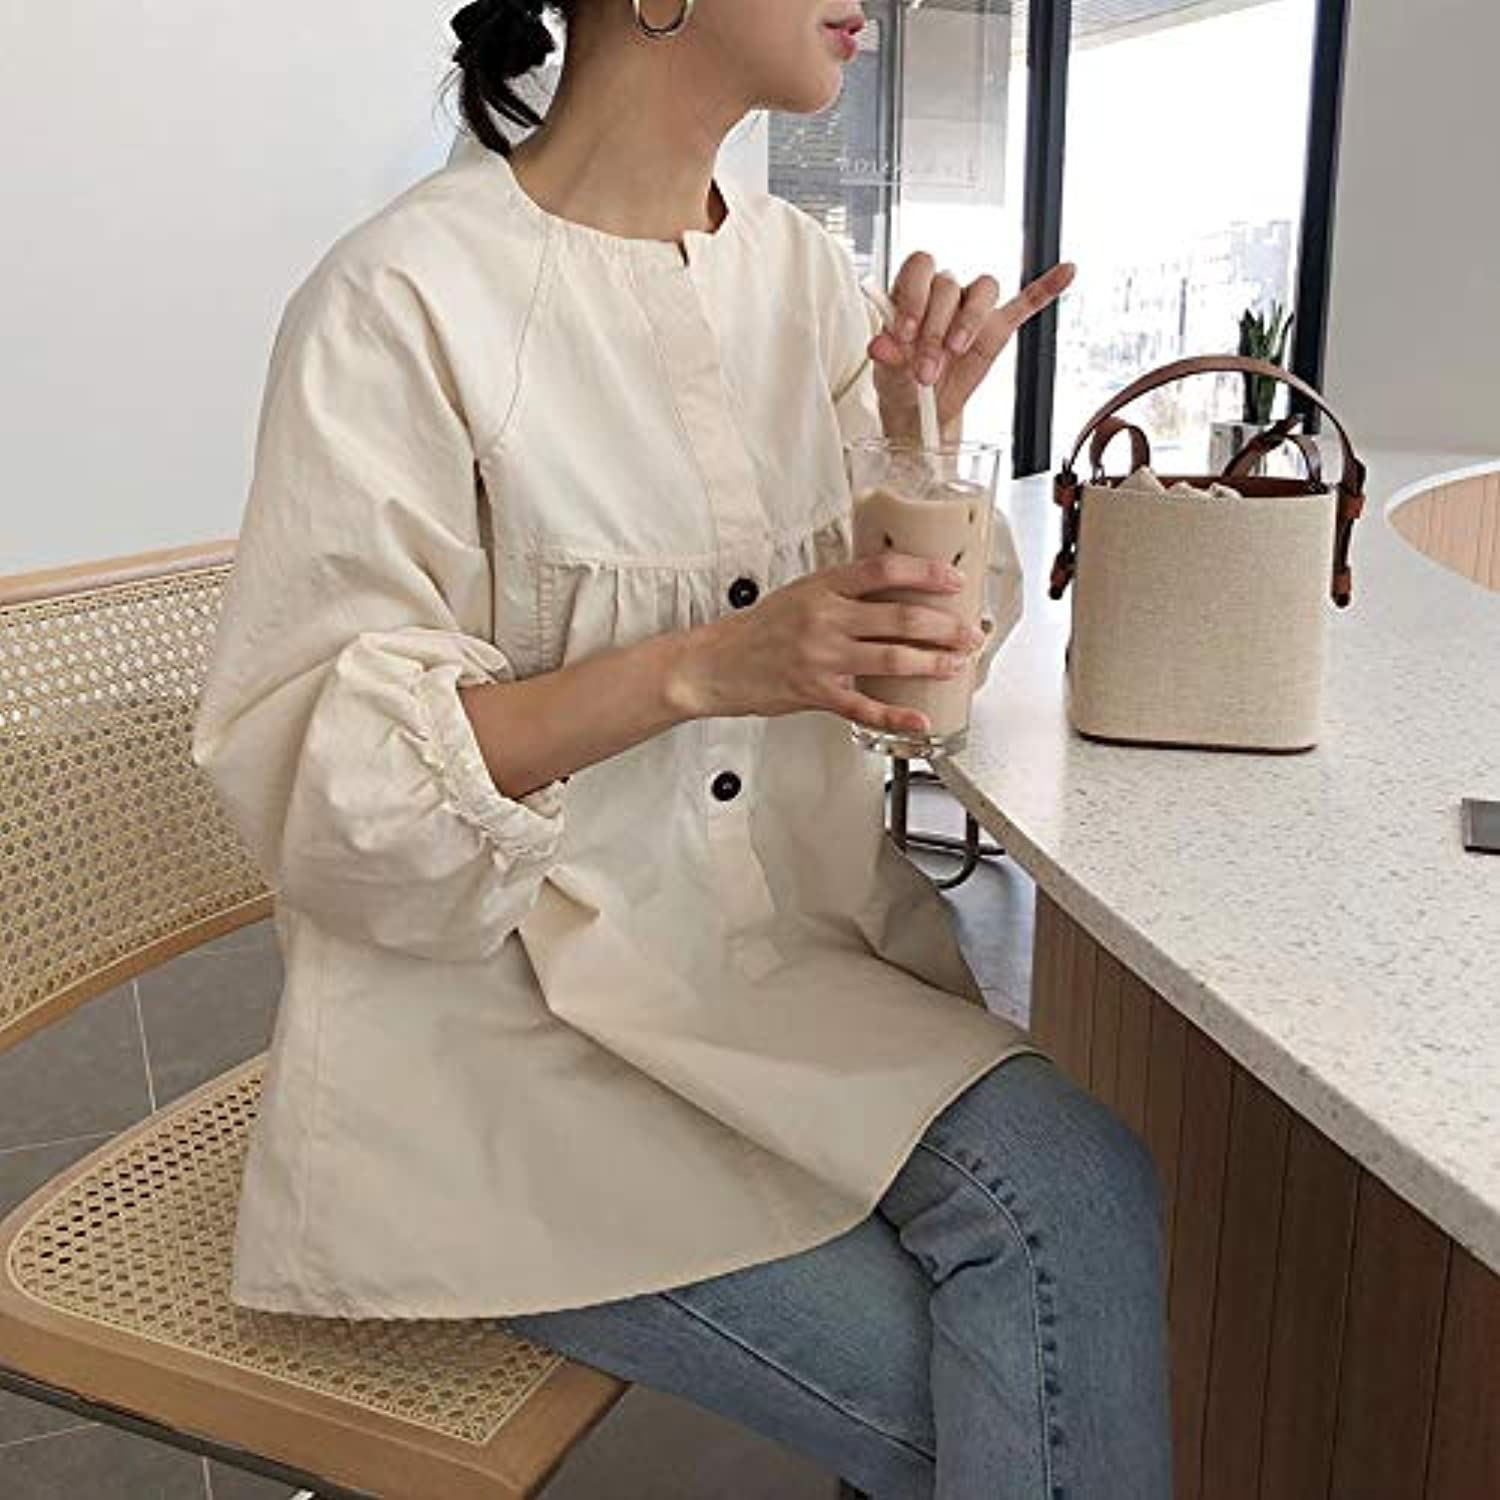 WANGZHAO Bucket Bag, Canvas Splicing, Crash color Handbag, Shoulder Bag, Satchel Bag, Women's Bag.